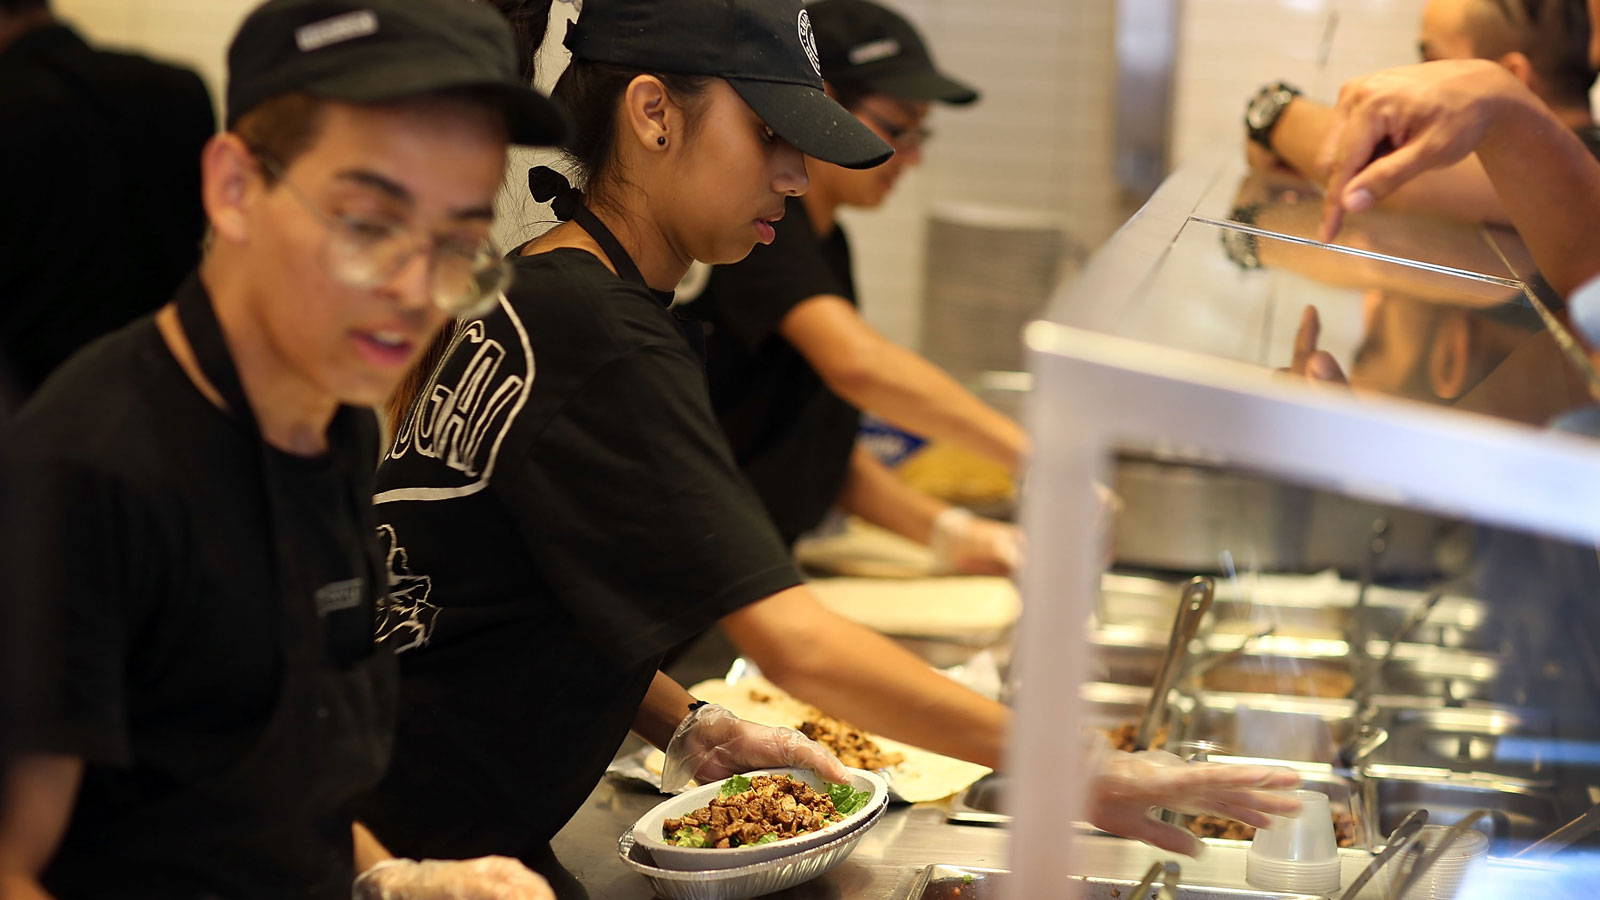 chipotle-workers-overtime-lawsuit-FT-BLOG0617.jpg